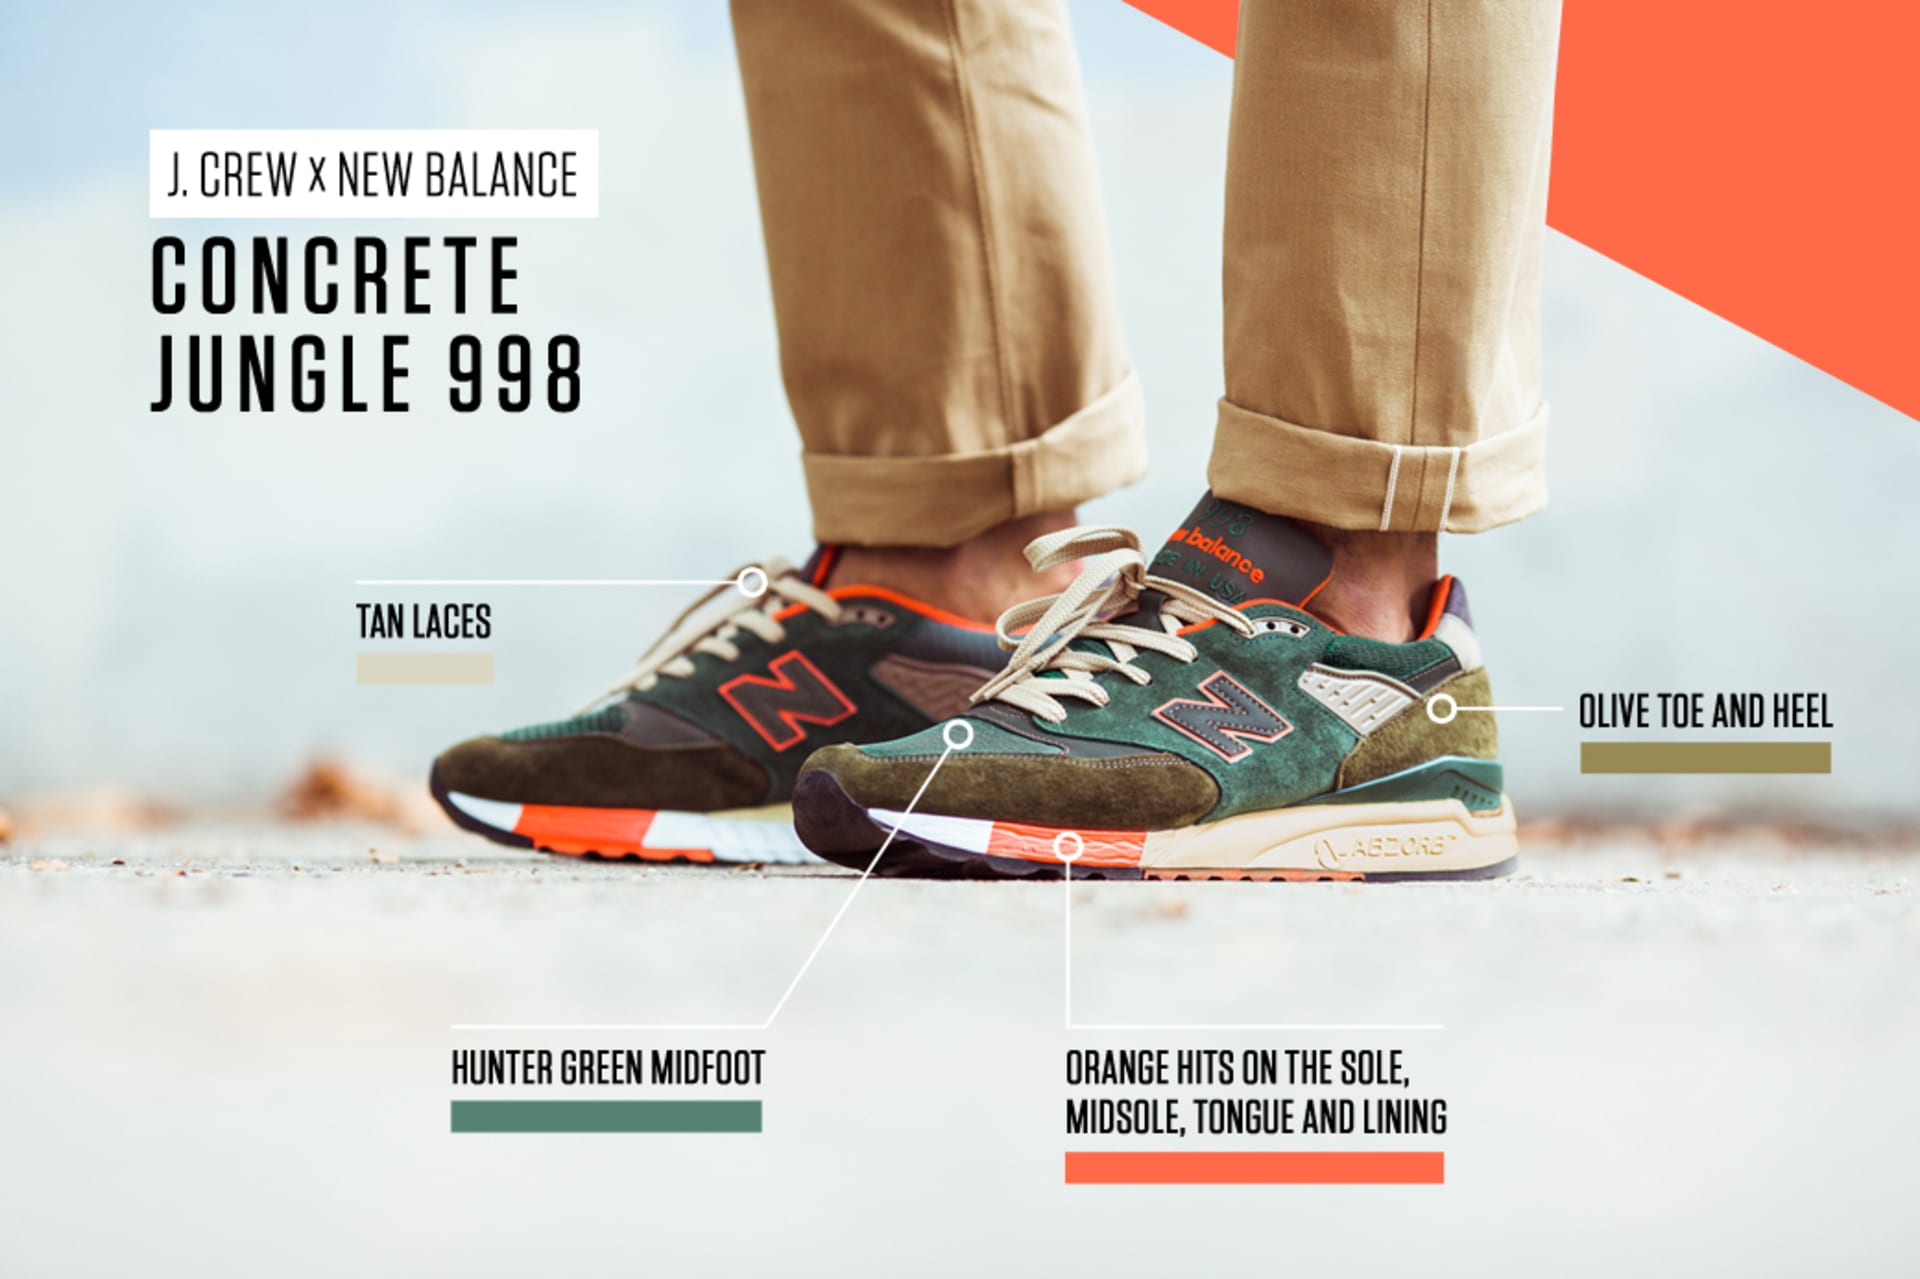 bebcfa30c3a164 How J.Crew Got Sneakerheads to Care About Style